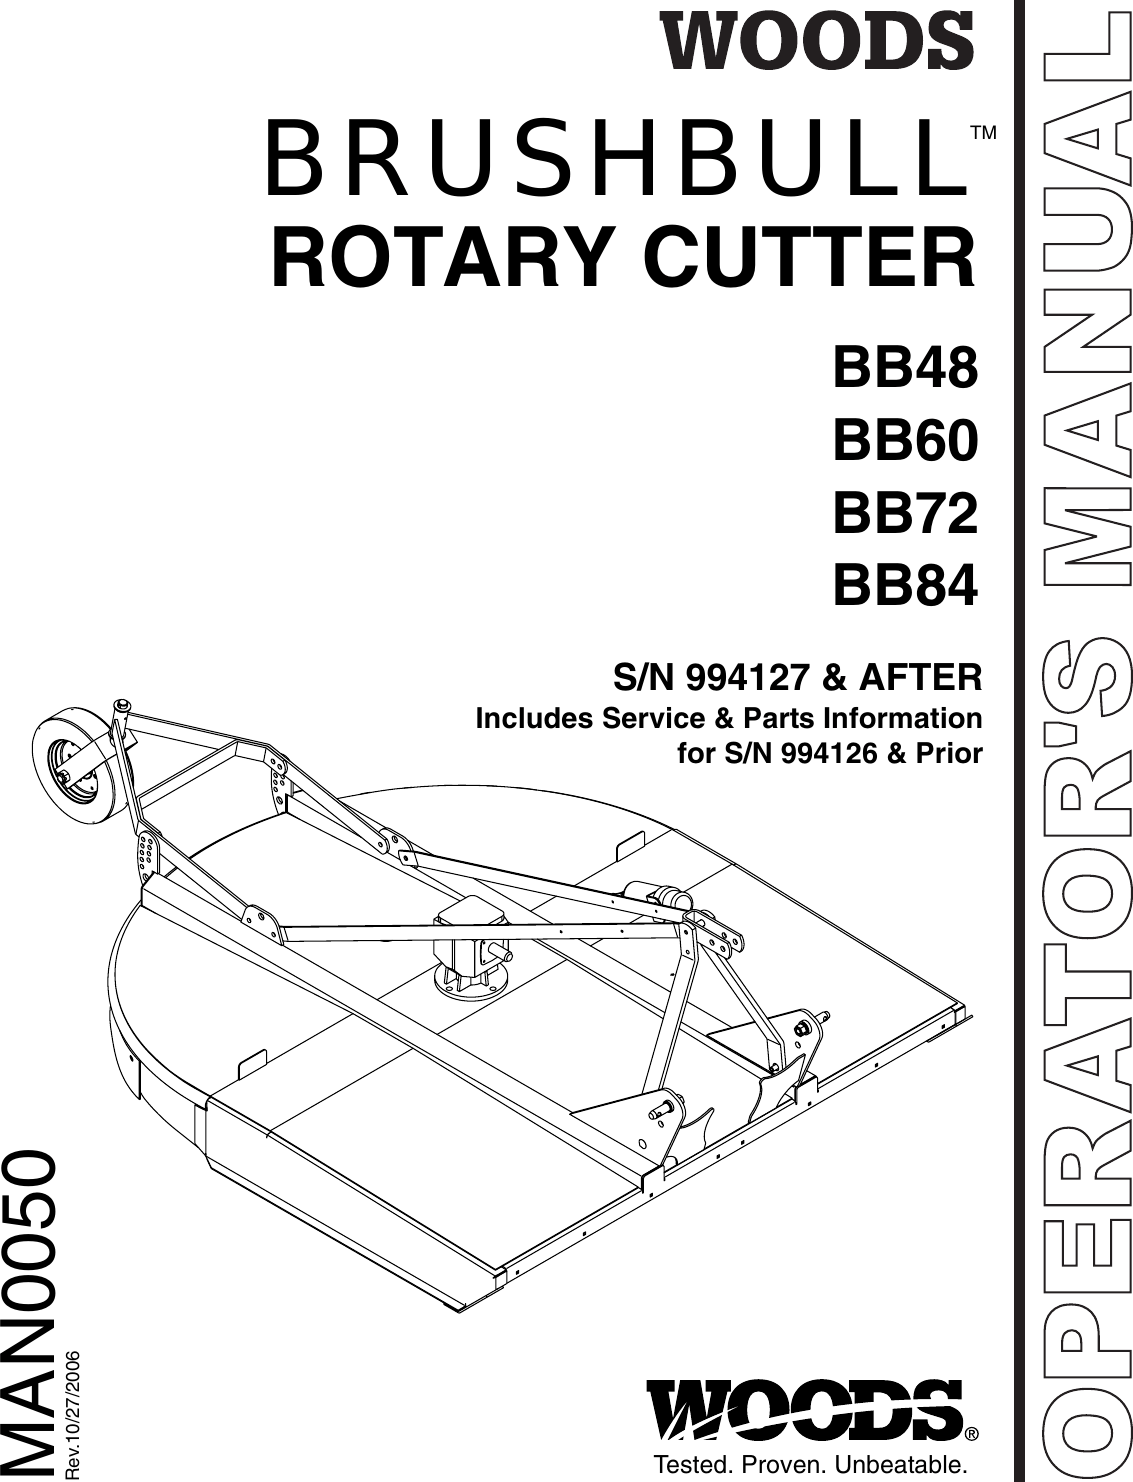 Brushbull Rotary Cutter Bb48 Bb60 Bb72 And Bb84 Woods Bbstandard Duty